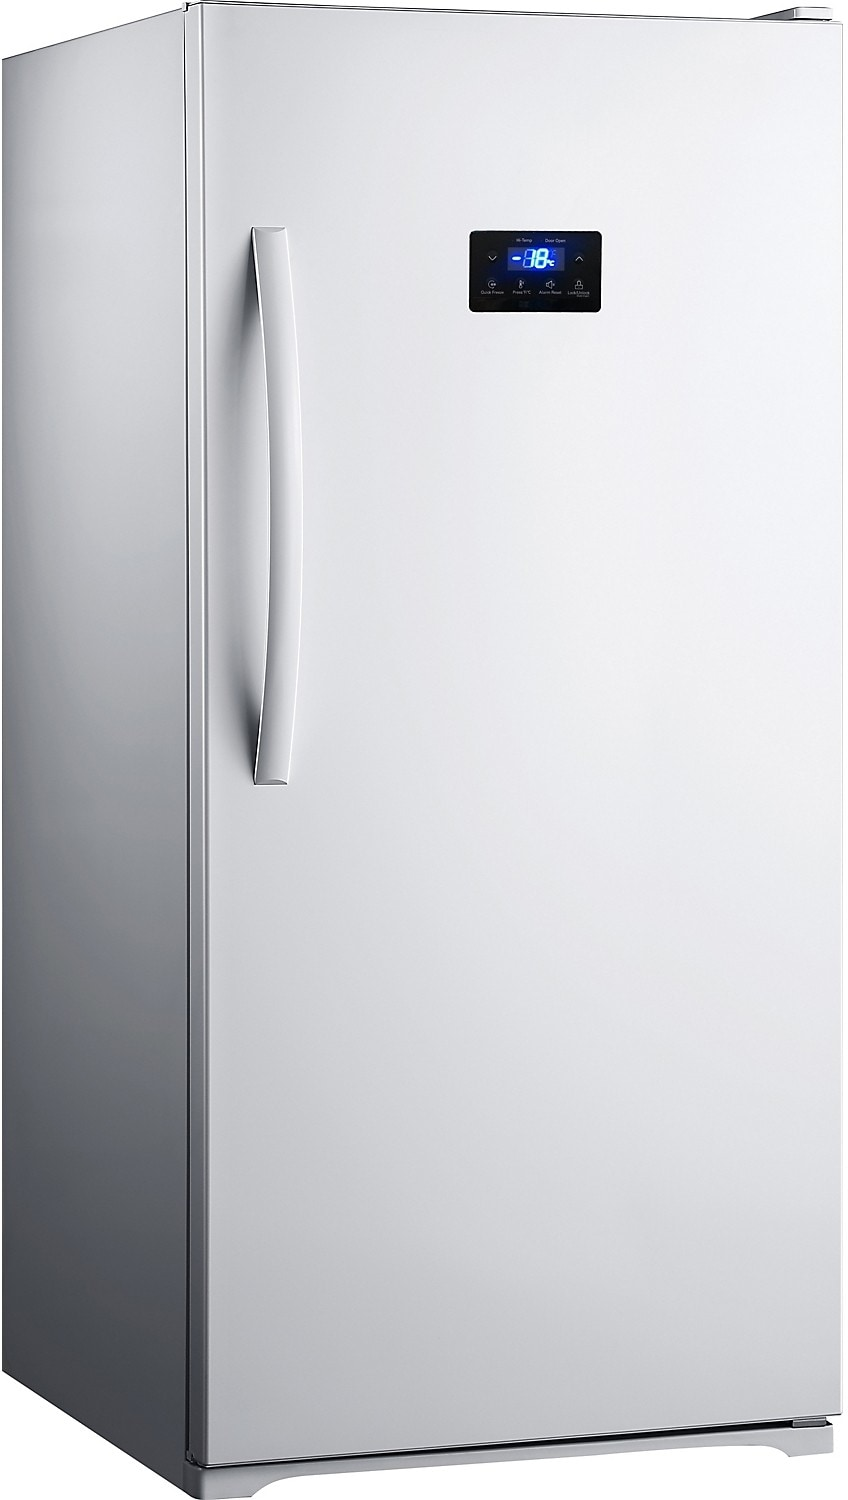 Refrigerators and Freezers - Midea® 13.8 Cu. Ft. No-Frost Upright Freezer – White